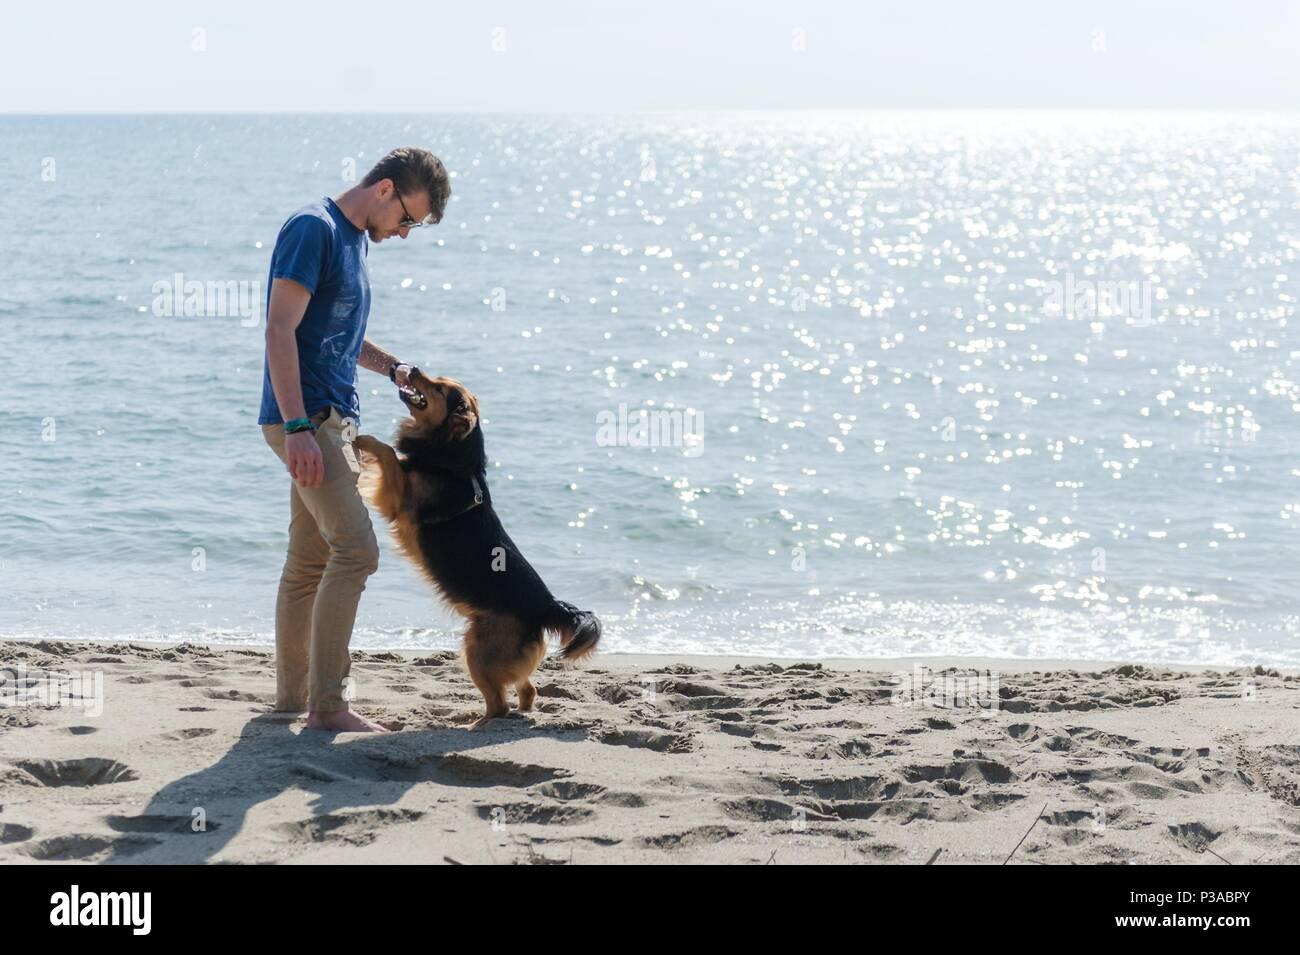 Young caucasian boy playing with dog on beach. Man and dog having fun on seaside Stock Photo